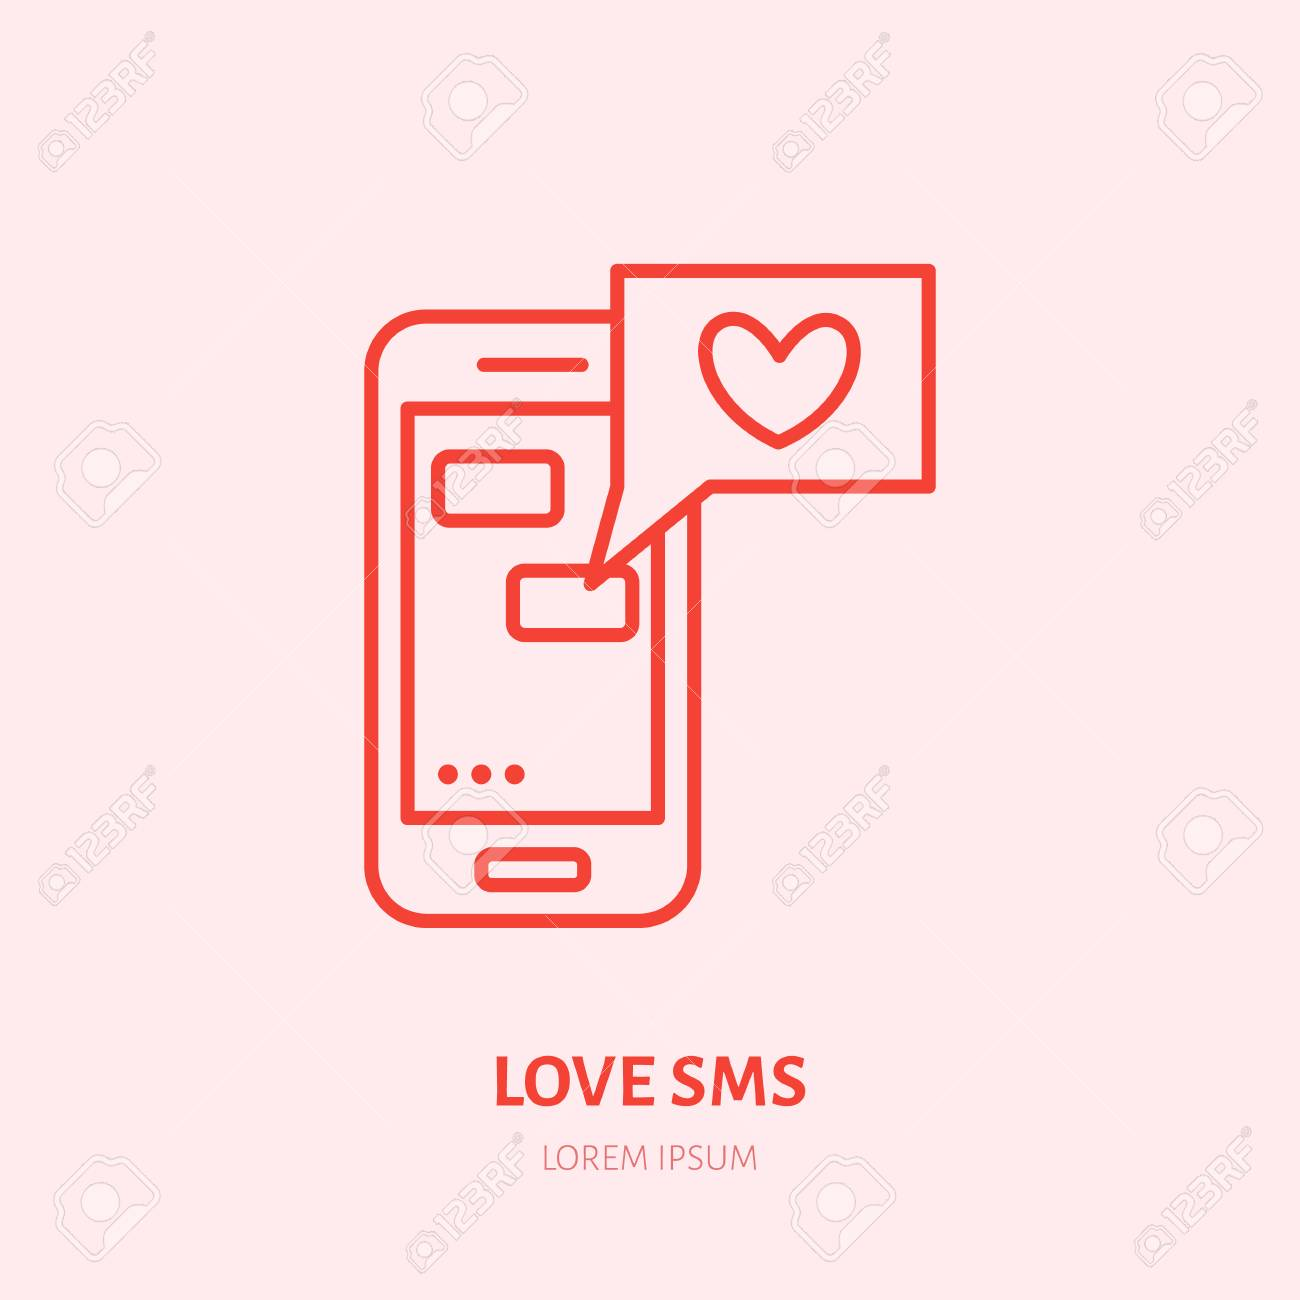 Smartphone with love sms by illustration  Dating message flat